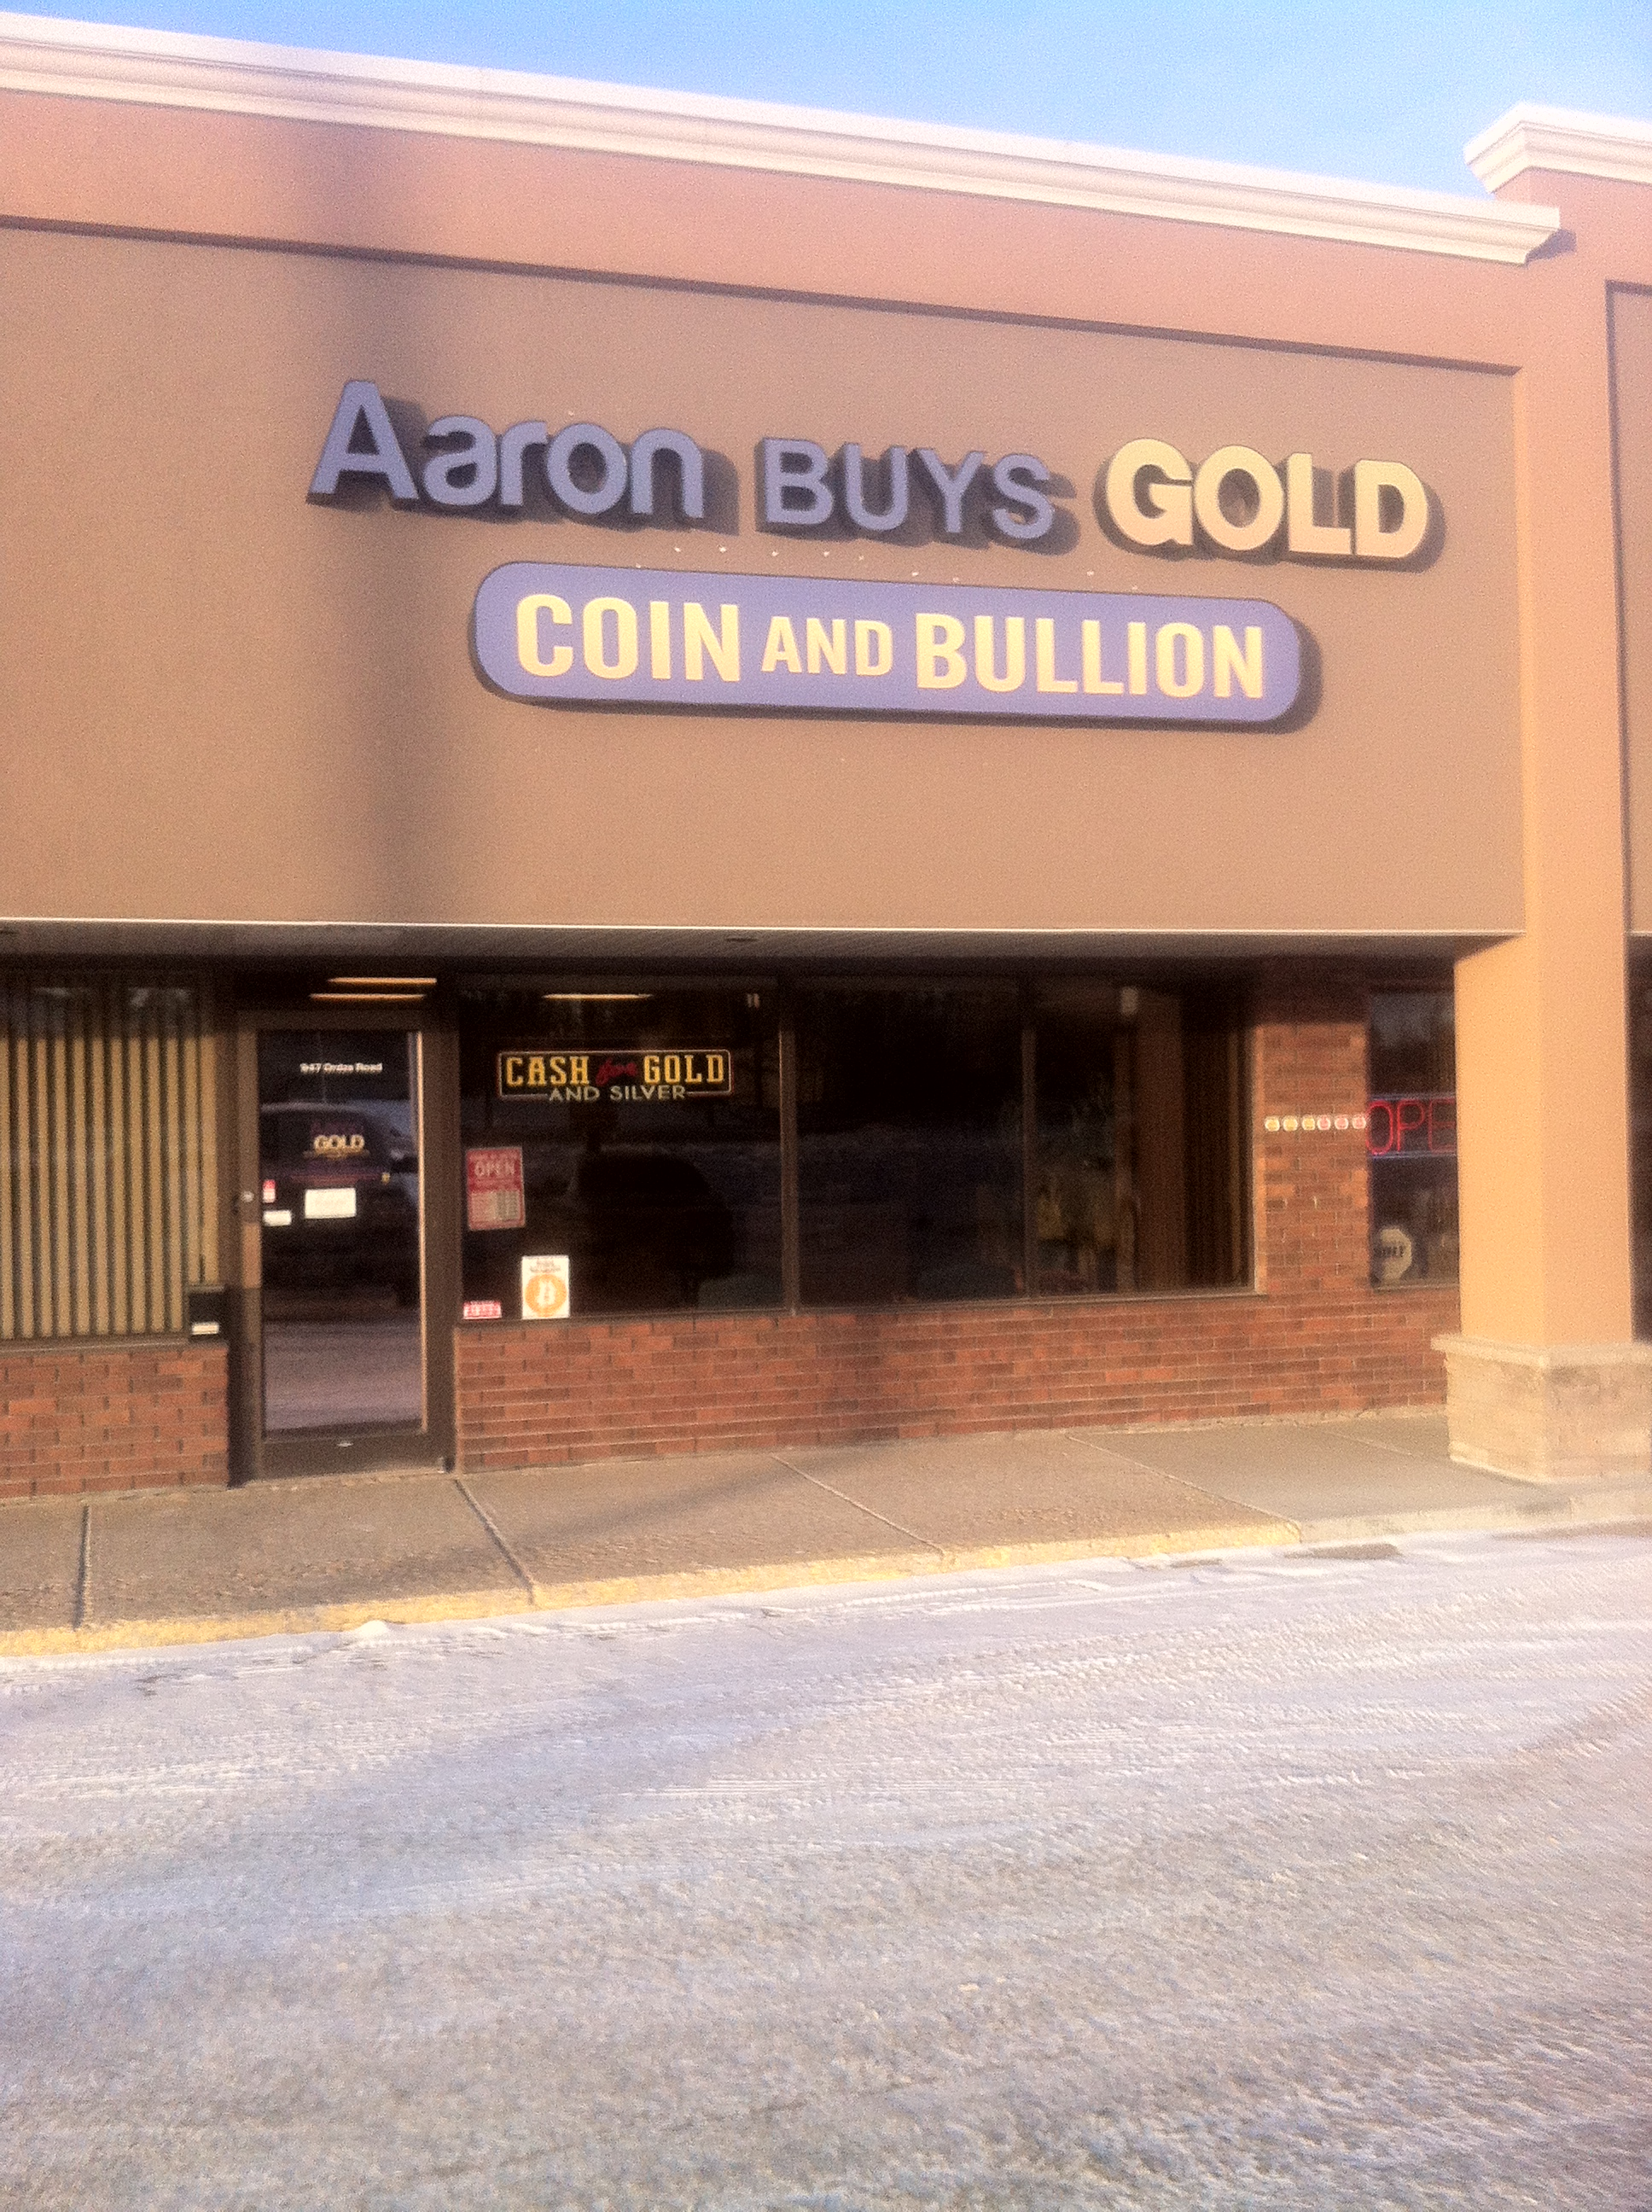 Buy Silver & Gold Bullion » Aaron Buys Gold - We Buy Gold ...